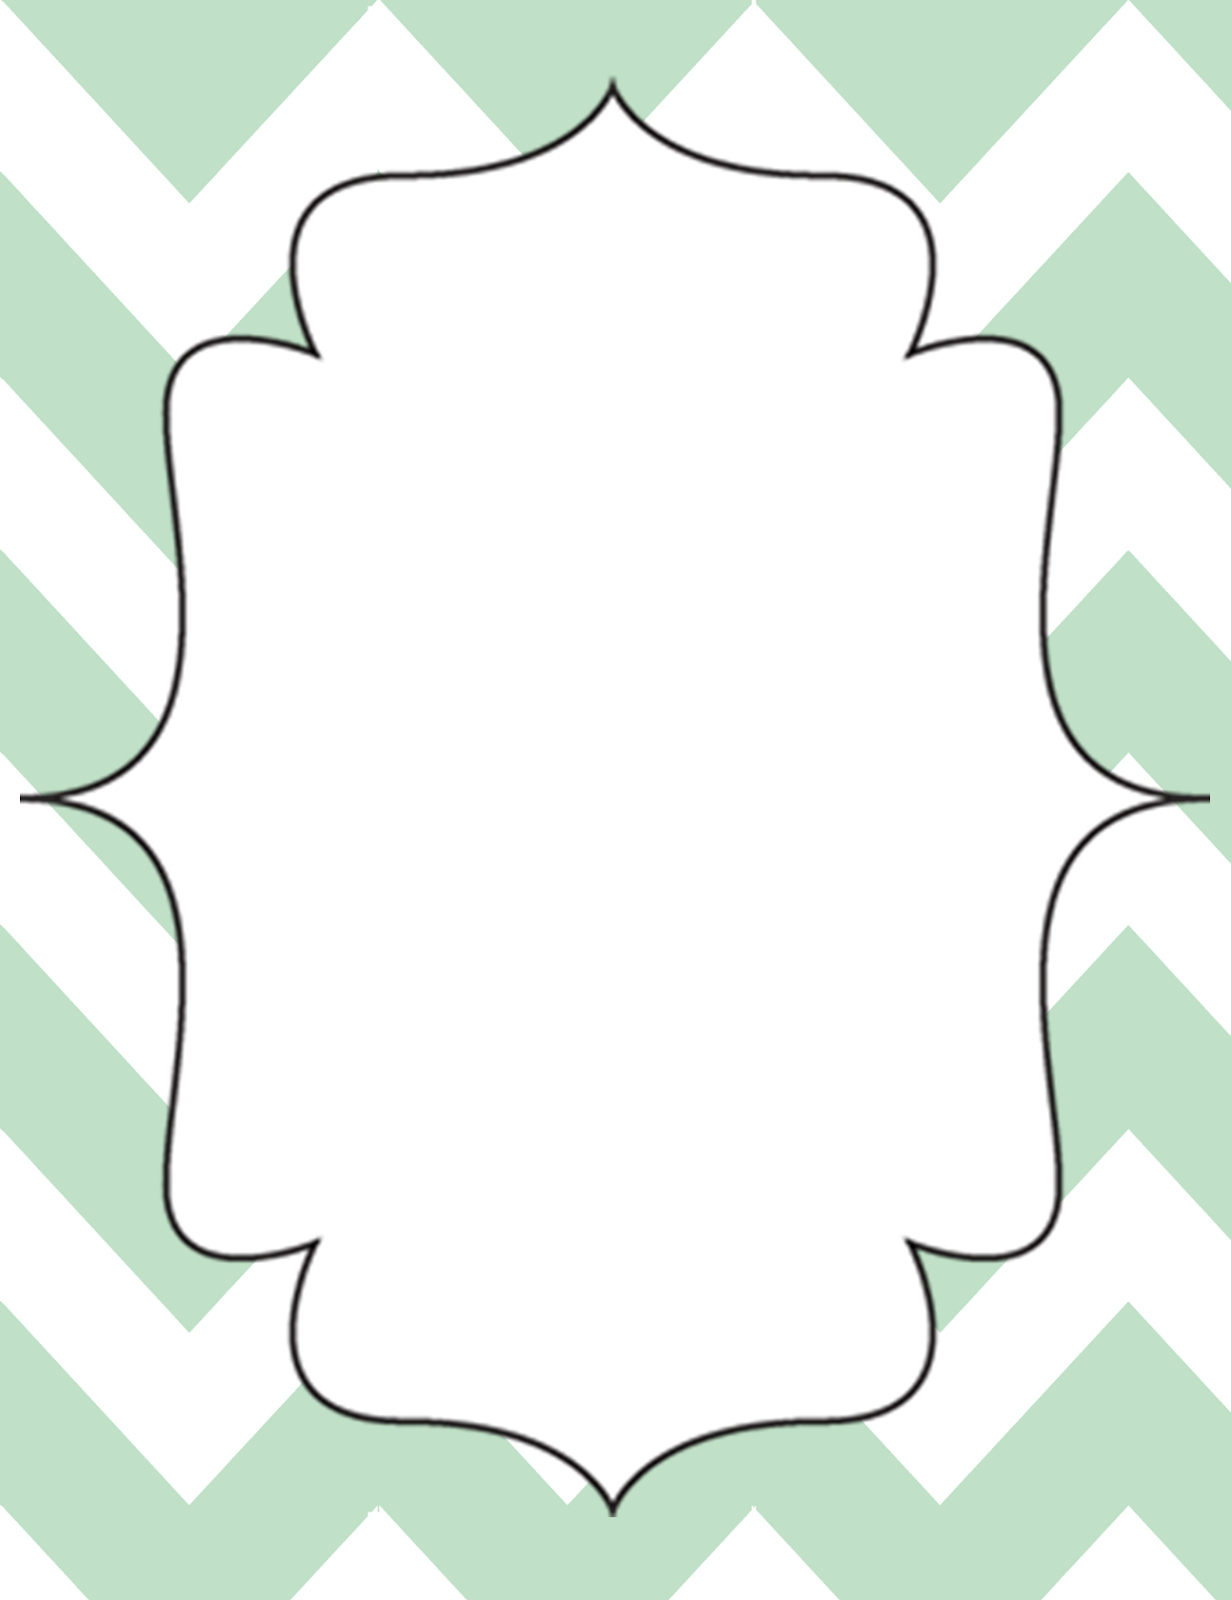 1231 x 1600 png 214kB, Adventures With Firsties: Mint Green Chevron ...